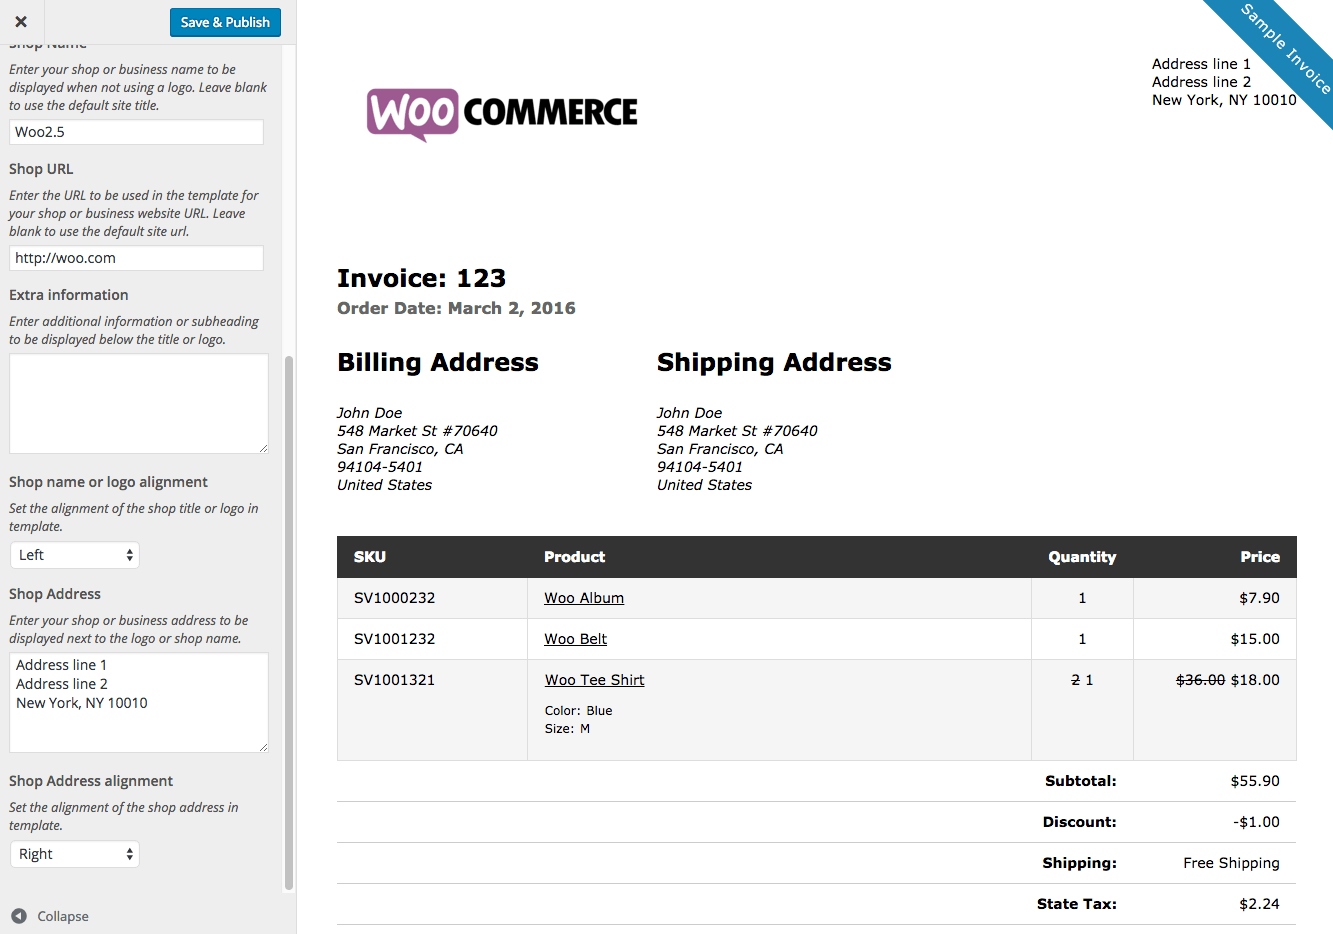 Conservativereviewus  Personable Woocommerce Print Invoices Amp Packing Lists  Woocommerce Docs With Lovable Woocommerce Print Invoices  Packing Lists Customizer With Divine Bbmp Tax Paid Receipt Also Image Of A Receipt In Addition Official Receipt Sample Format And Used Car Sale Receipt Template As Well As Forwarder Certificate Of Receipt Additionally Definition Receipts From Docswoocommercecom With Conservativereviewus  Lovable Woocommerce Print Invoices Amp Packing Lists  Woocommerce Docs With Divine Woocommerce Print Invoices  Packing Lists Customizer And Personable Bbmp Tax Paid Receipt Also Image Of A Receipt In Addition Official Receipt Sample Format From Docswoocommercecom